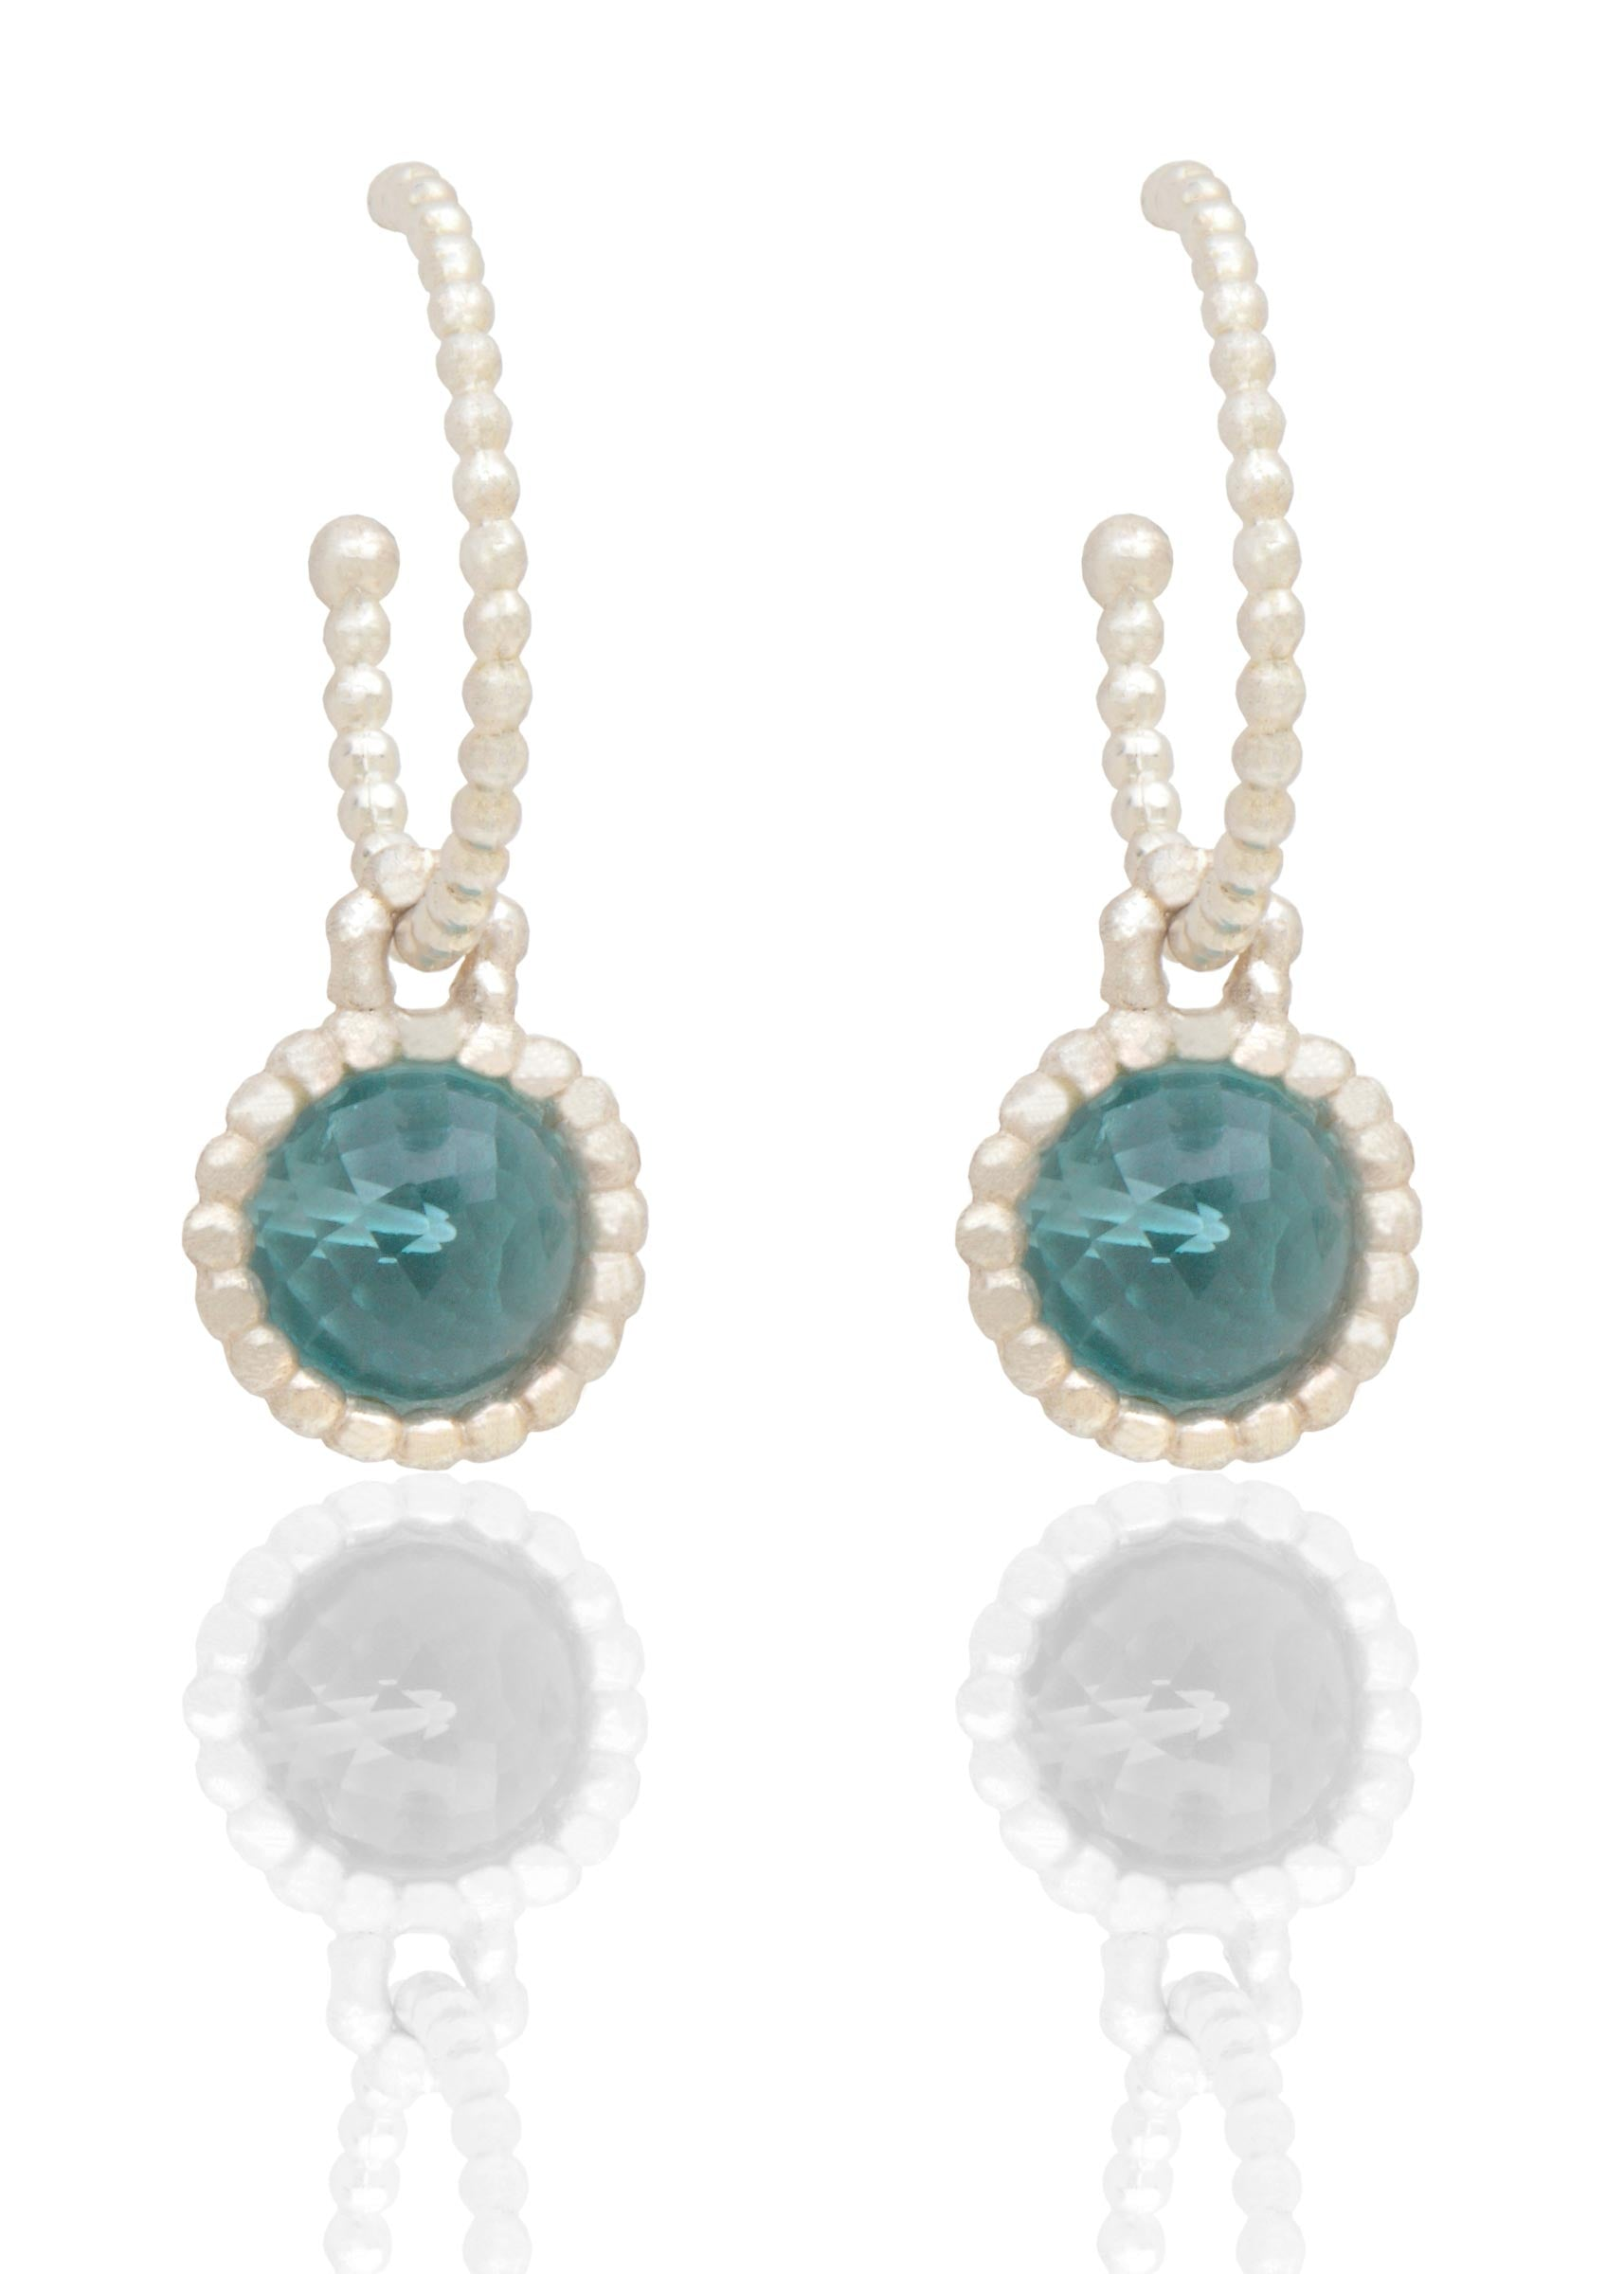 Byzantine silver hooped earrings with blue topaz